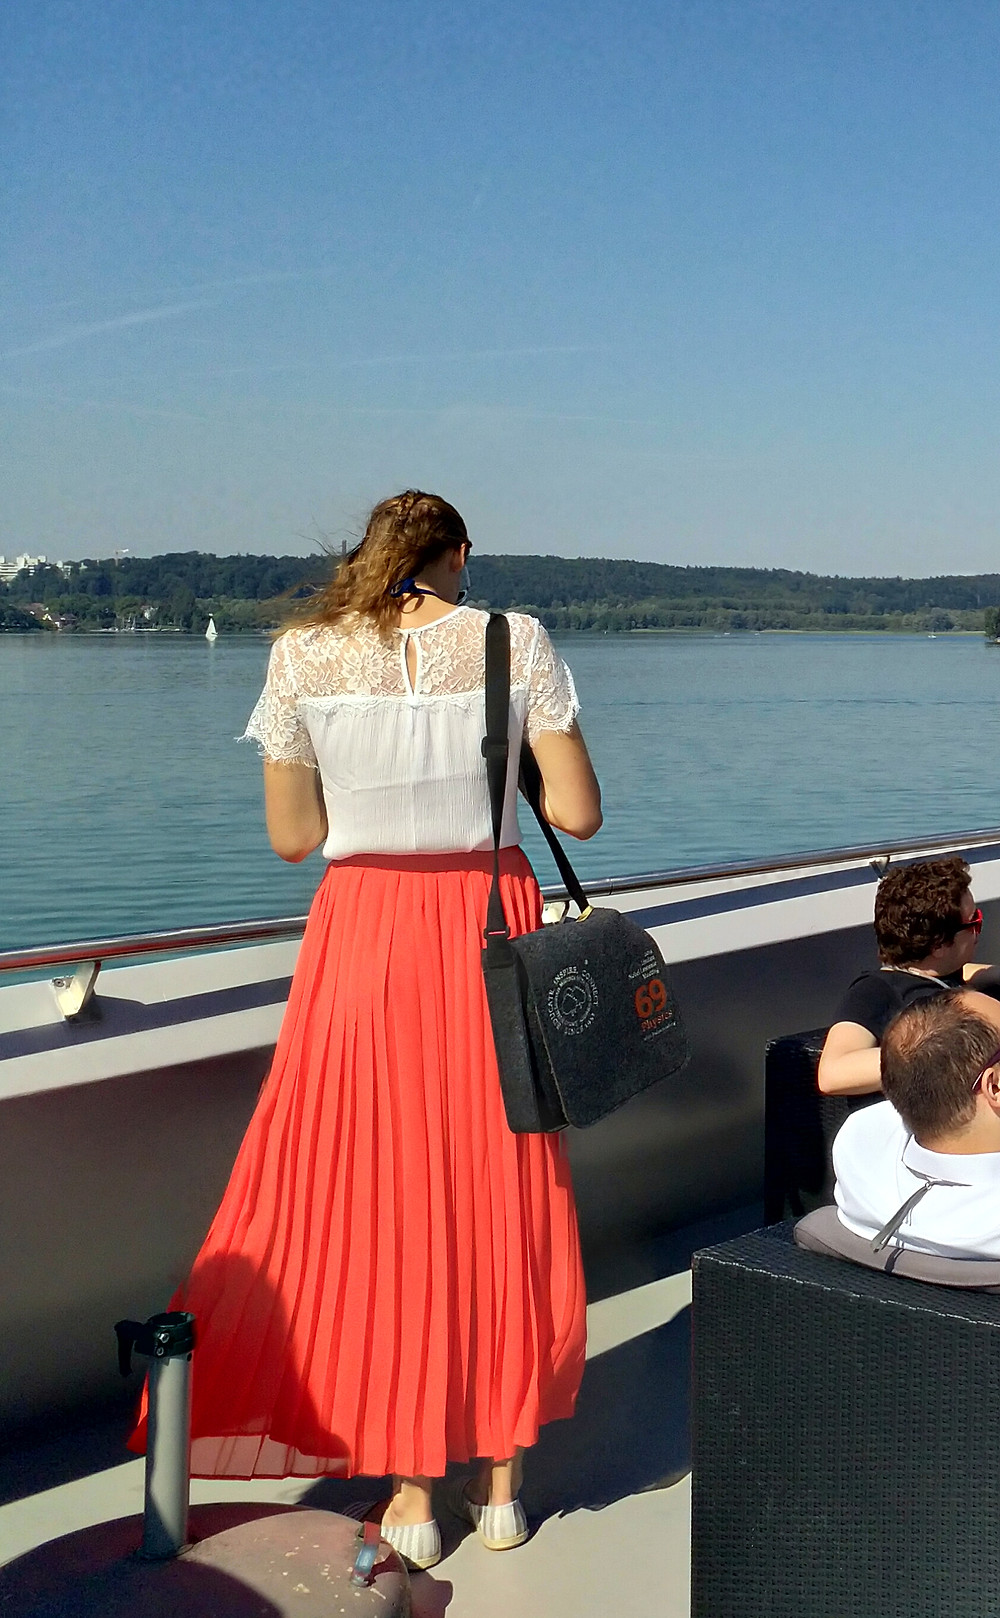 Boat trip from Lindau to the Mainau